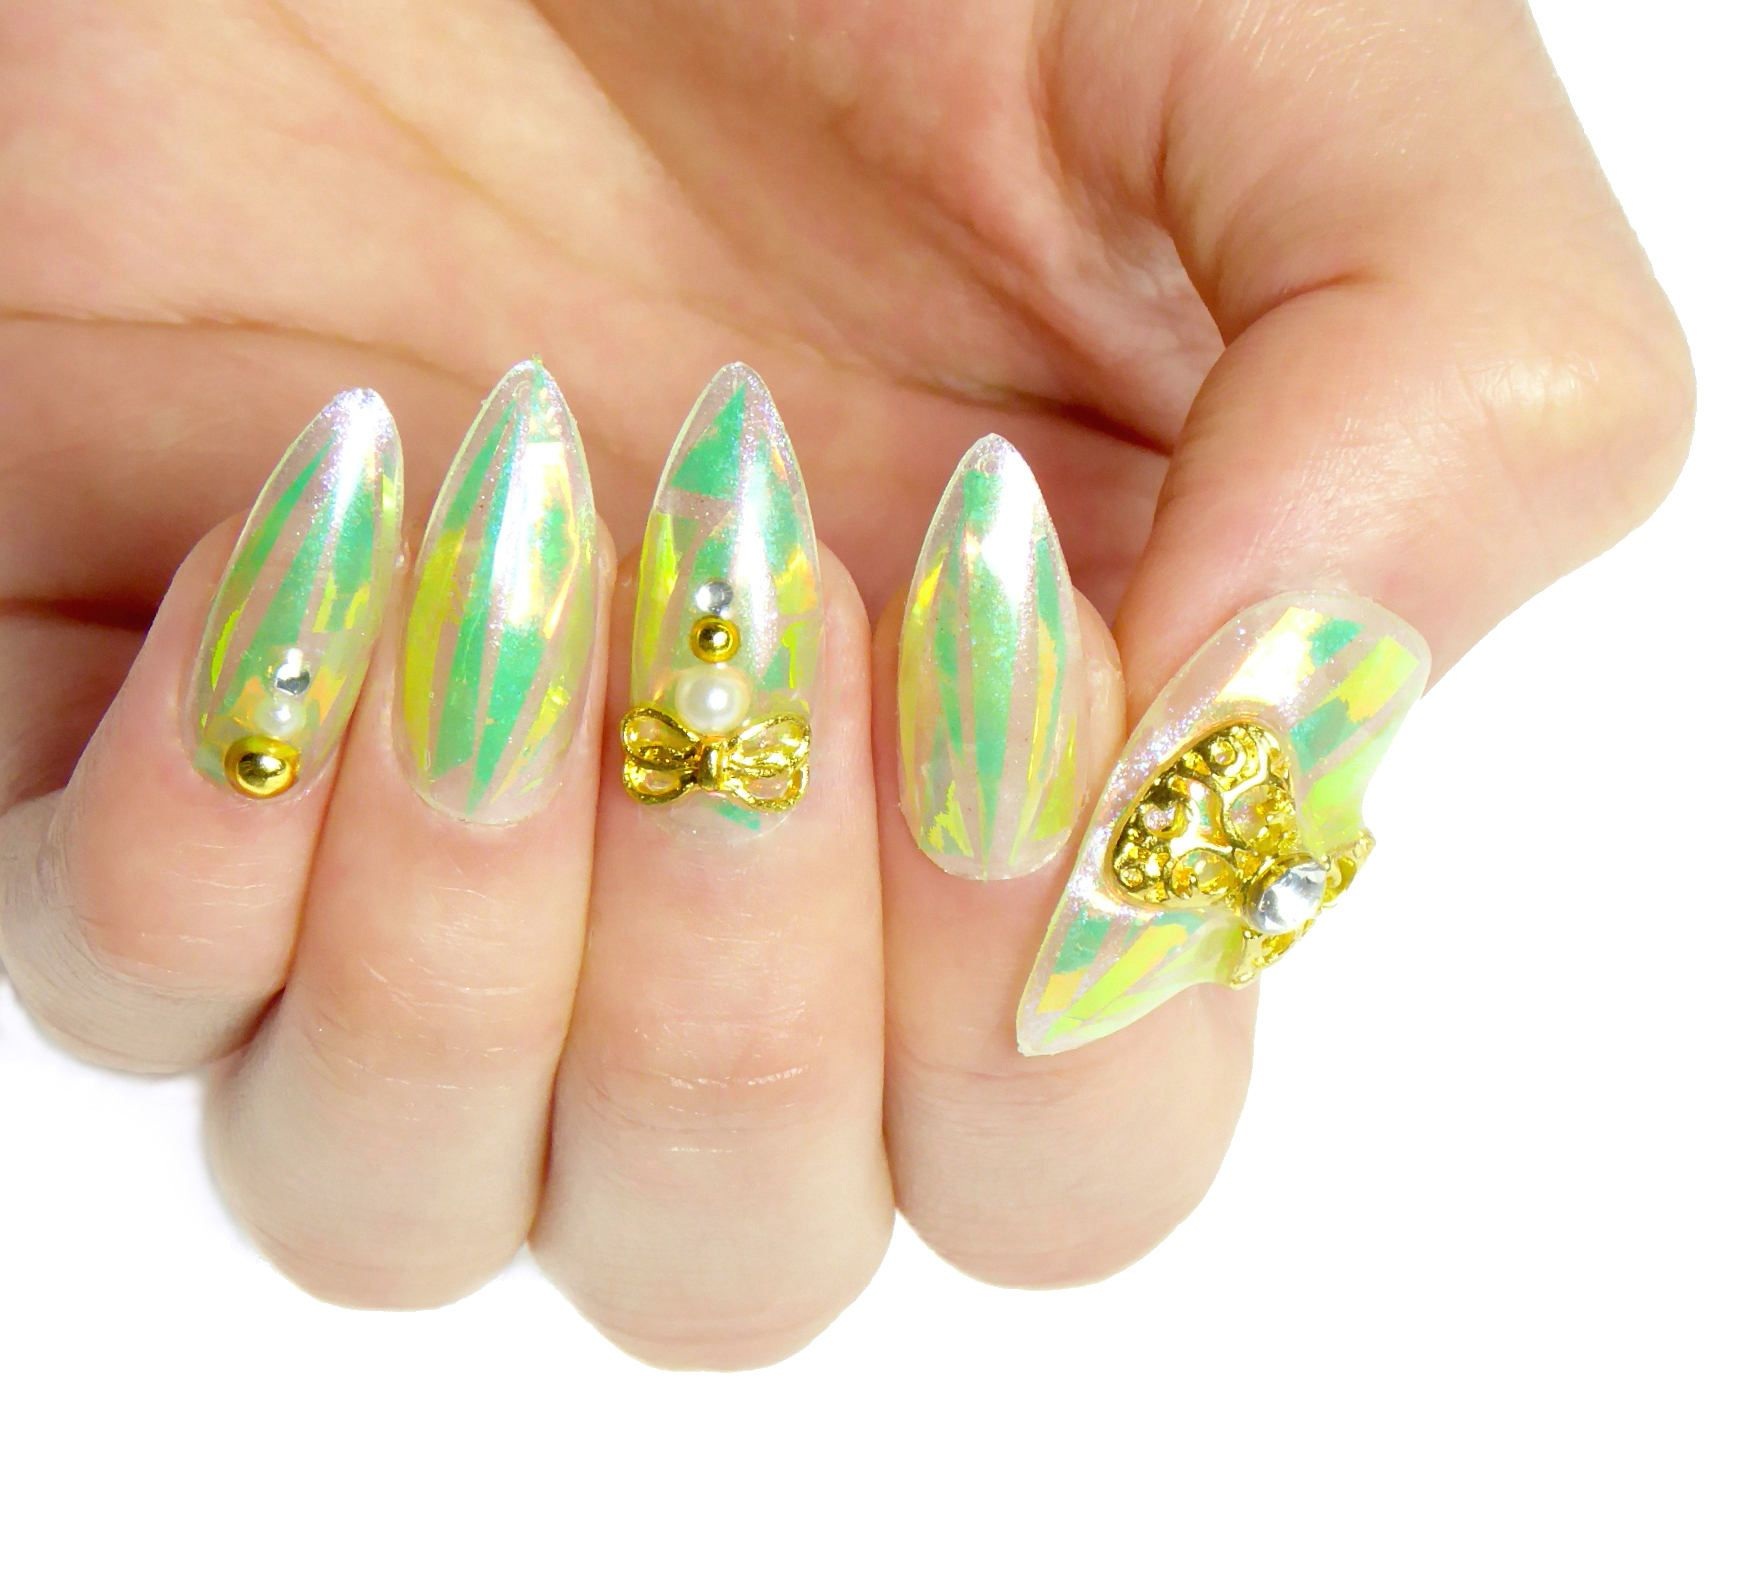 TinkerBell Fairy Gel Nails / Fake nails, glue on nails, press on ...